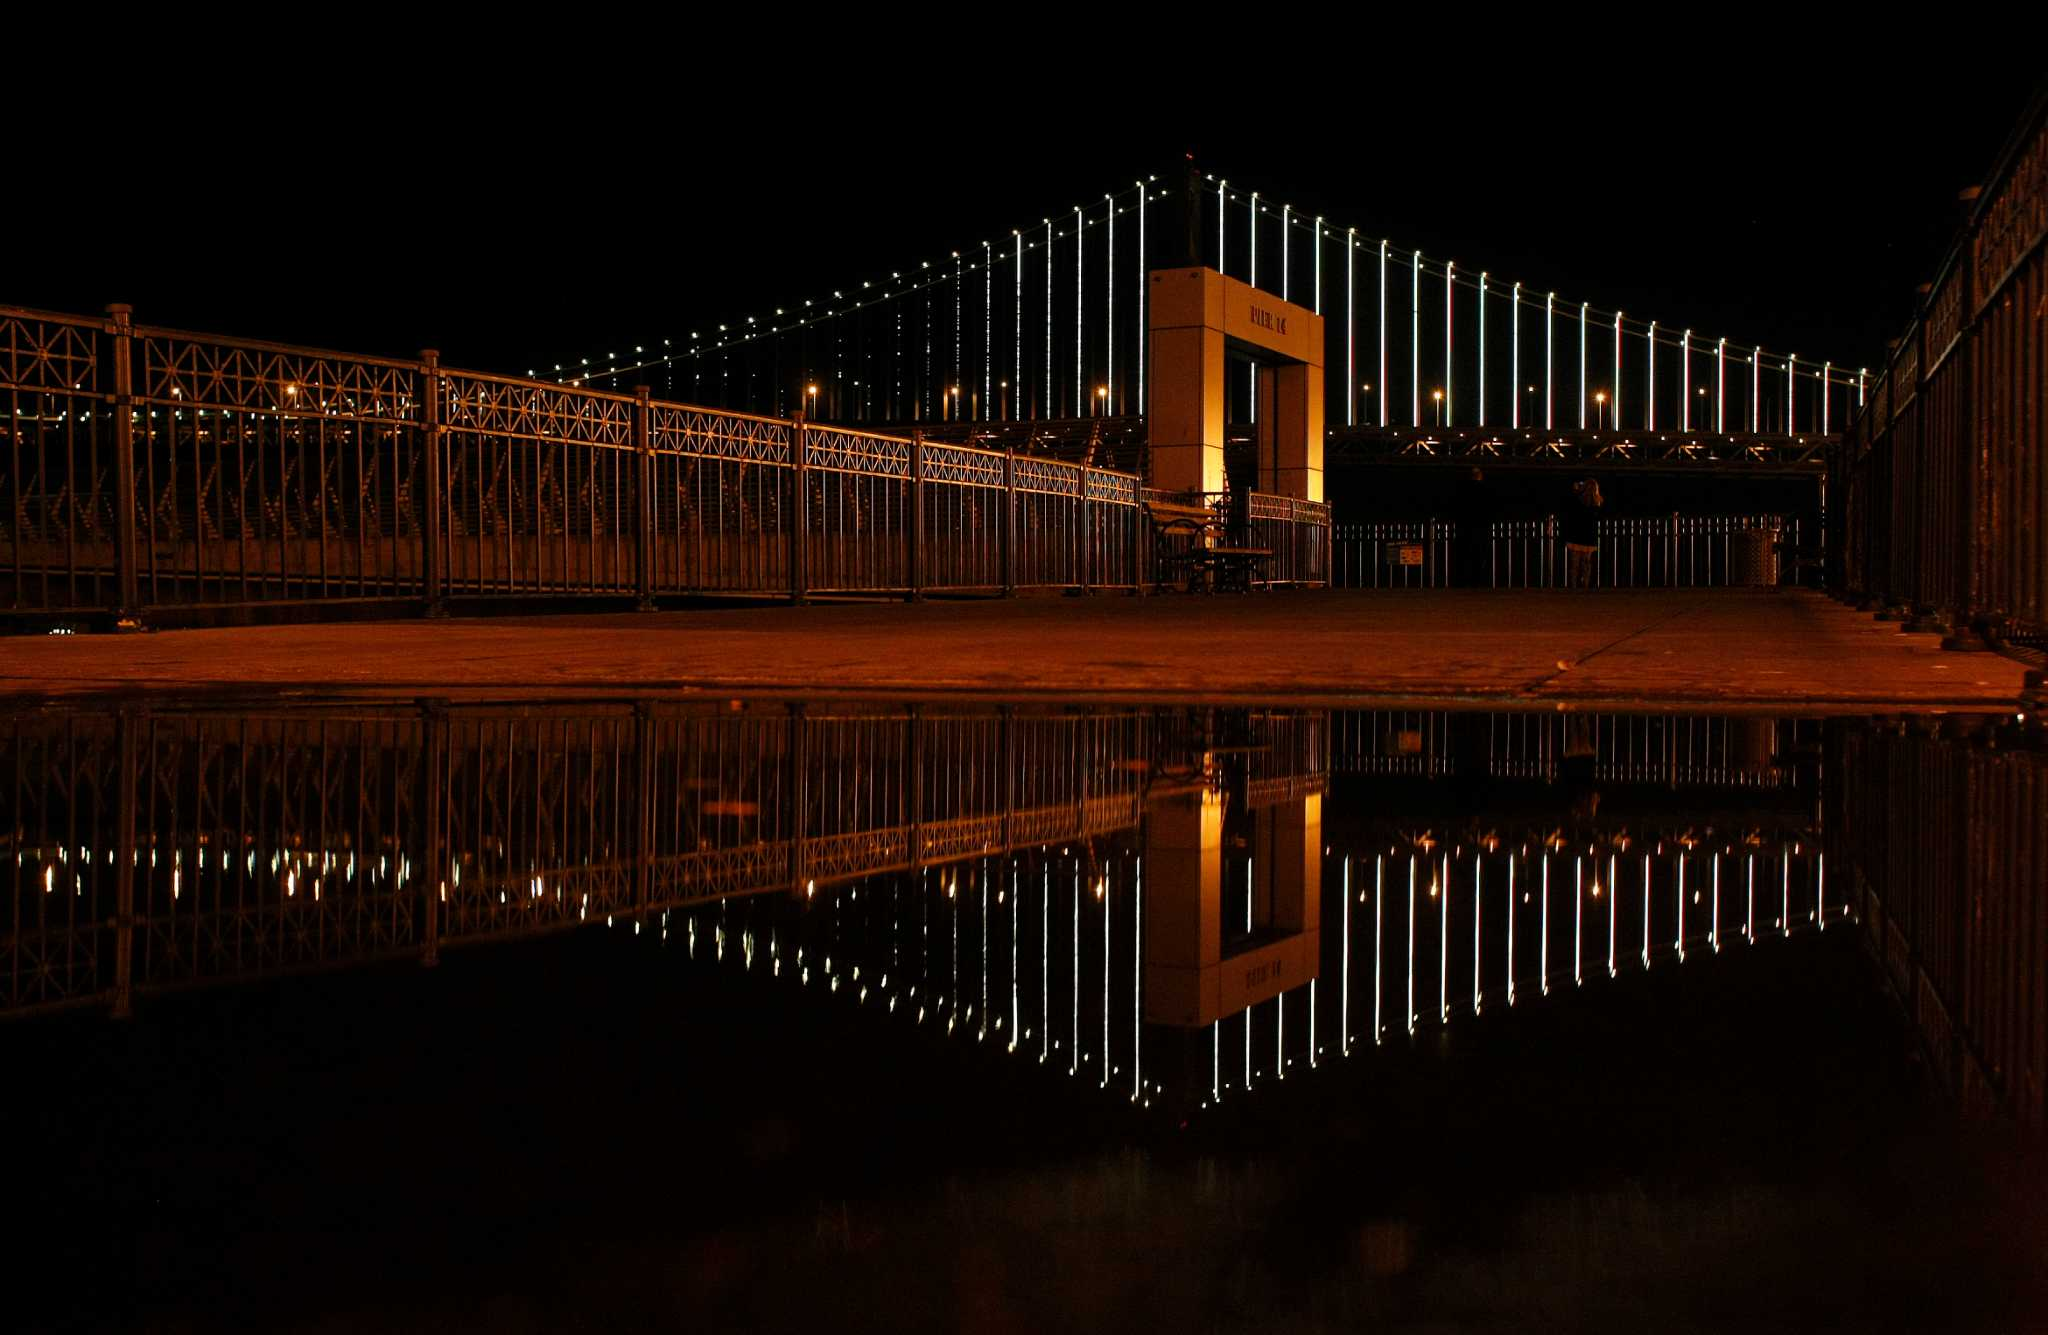 $4 million needed to save 'Bay Lights' on Bay Bridge - SFGate